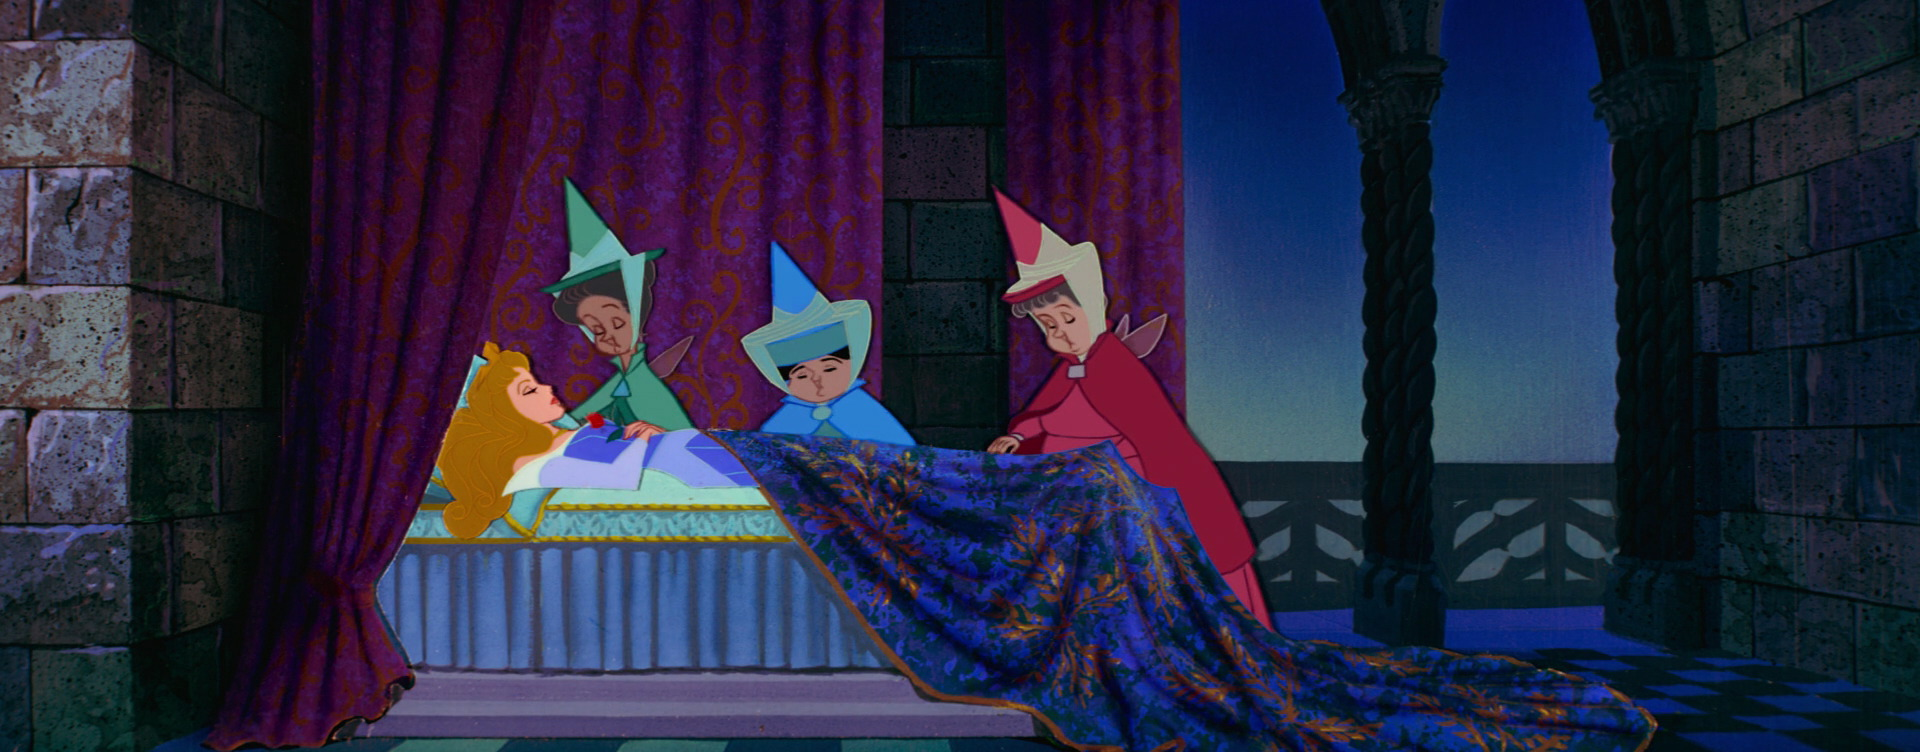 Sleeping Beauty Song Disney Wiki Fandom Powered By Wikia